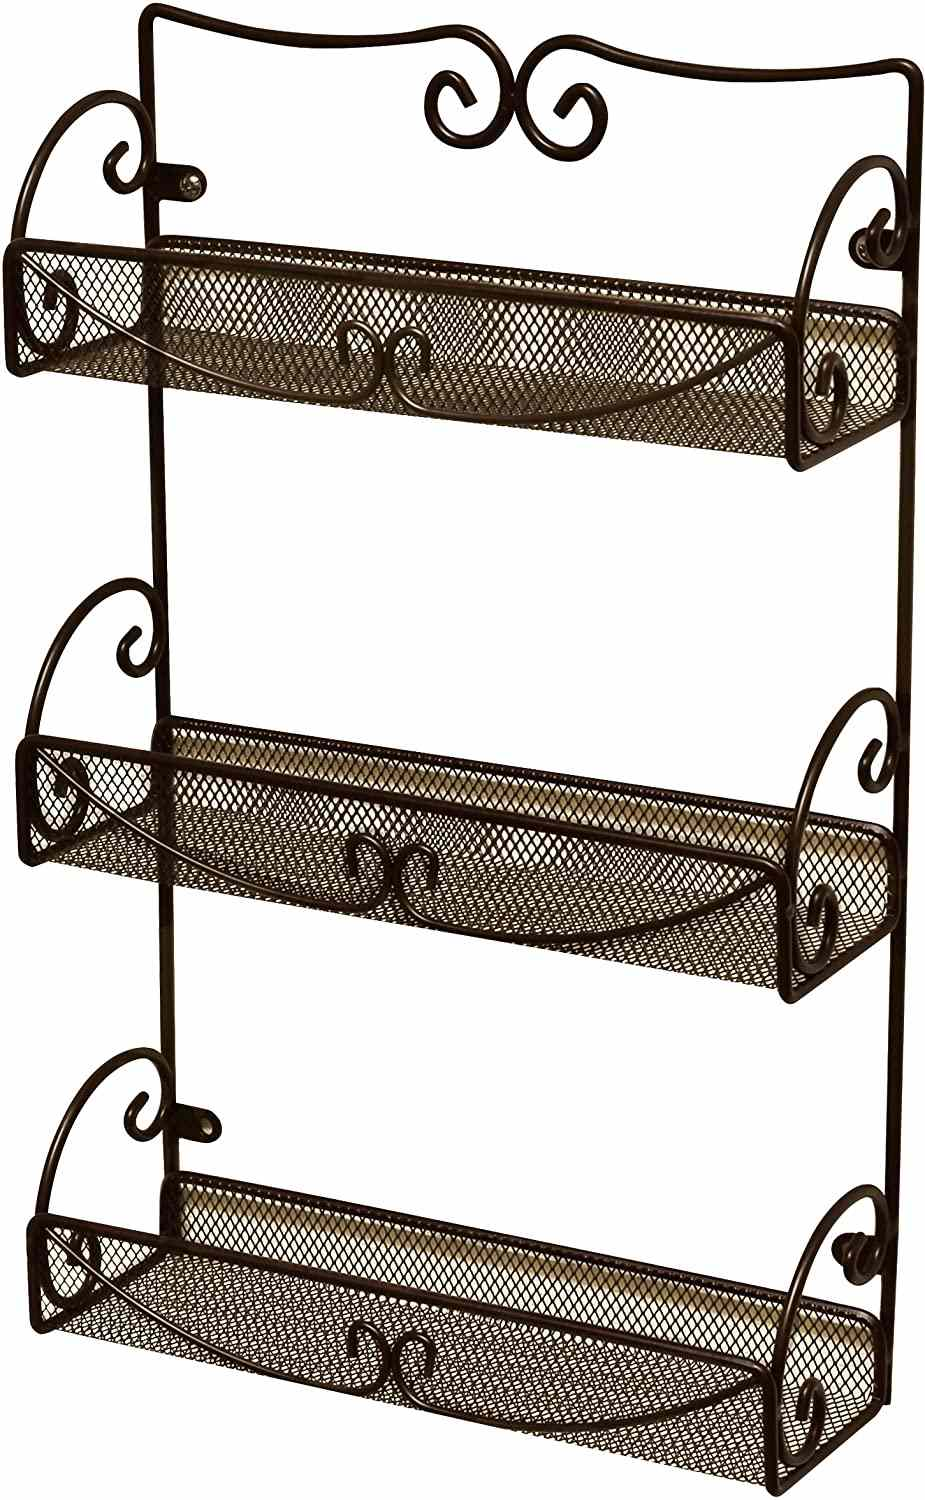 Deco Brothers 3-Tier Wall Mounted Spice Rack